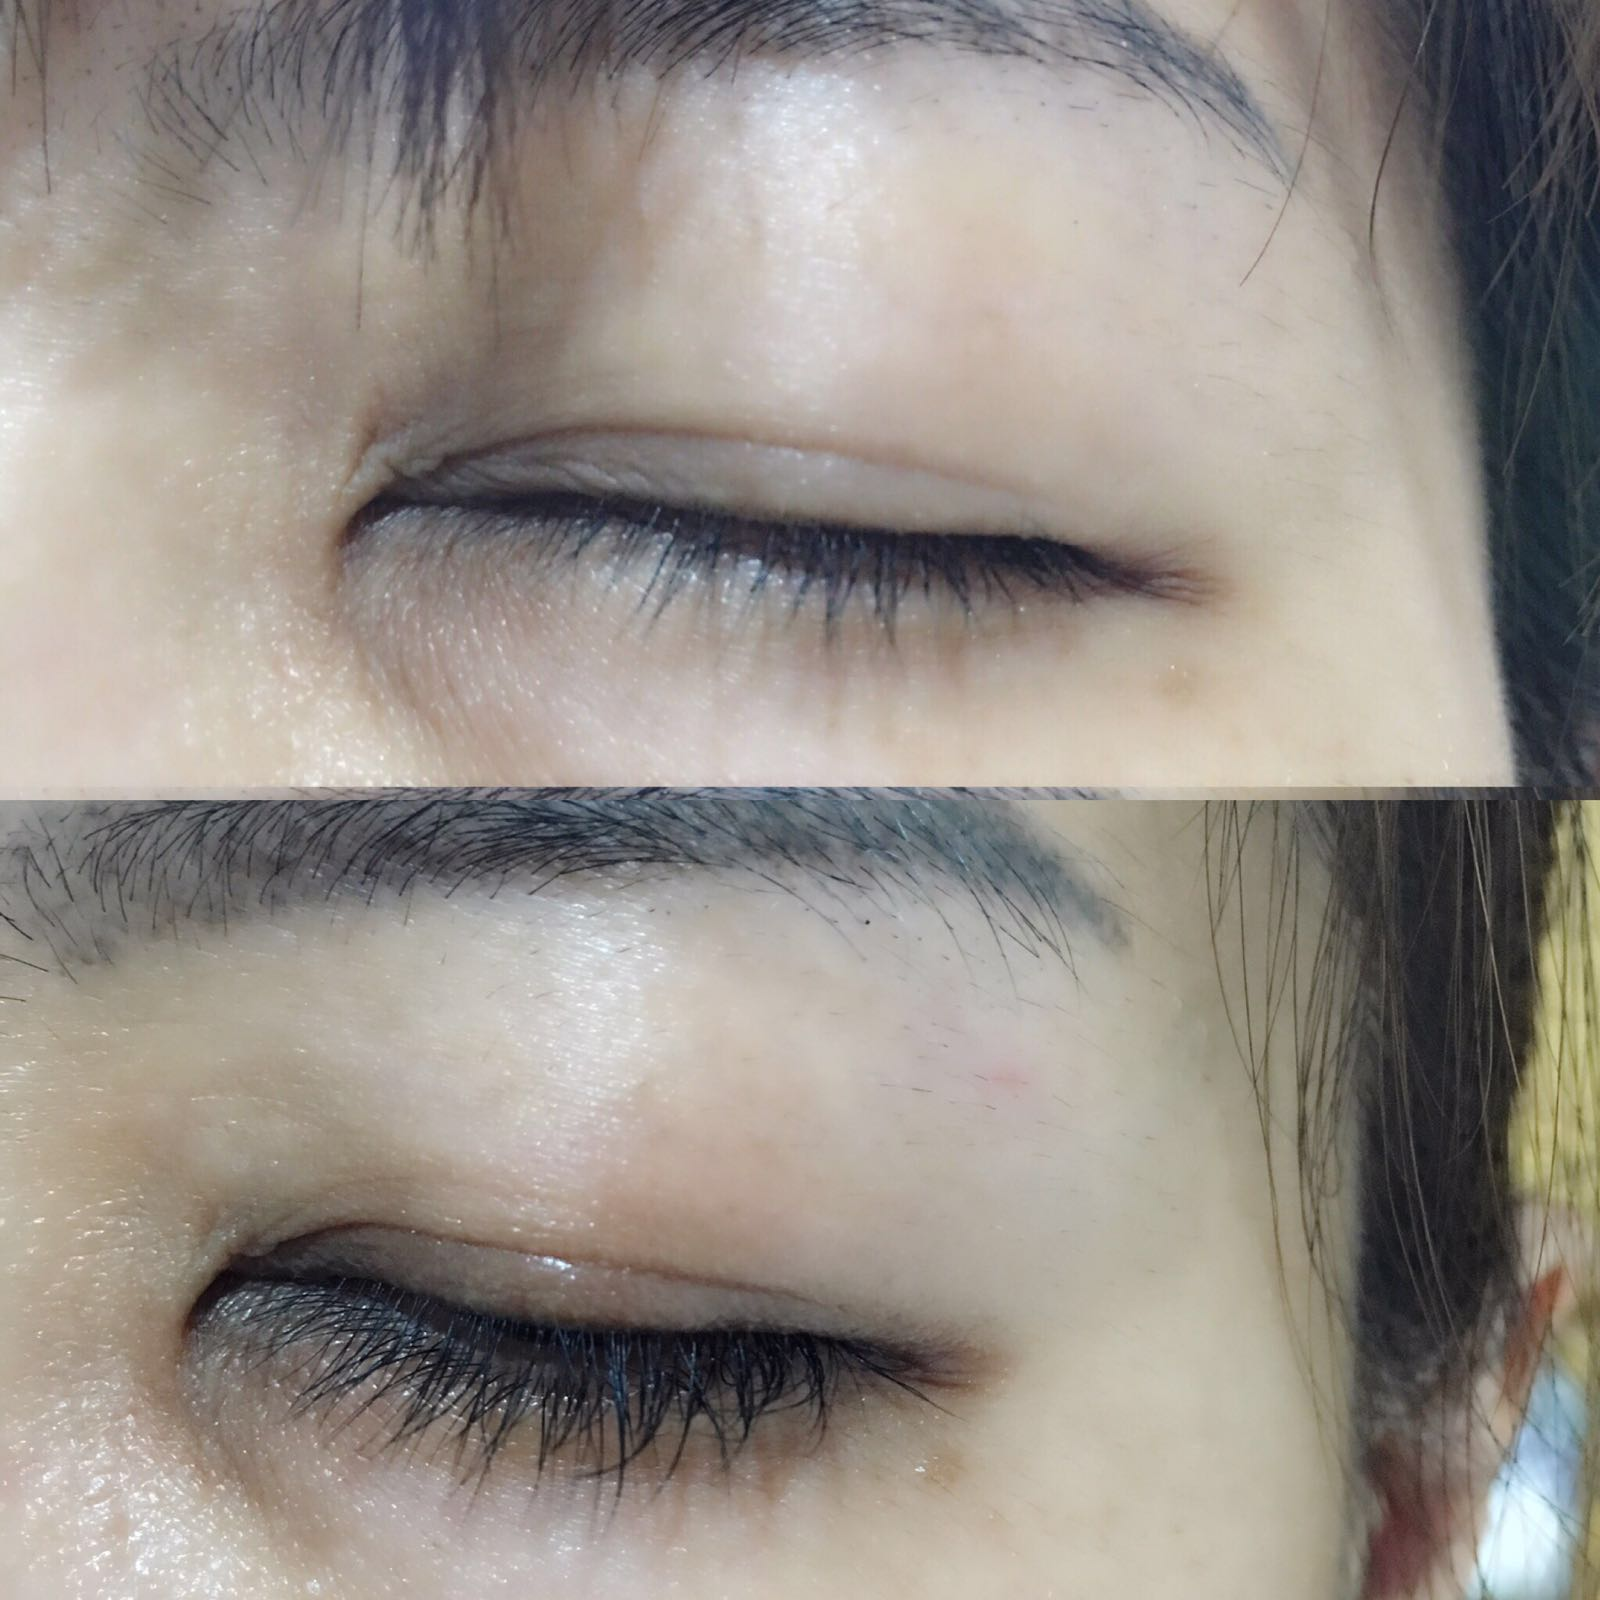 7d90f282c21 Testimonials - Xlash eyelash serum reviews Singapore